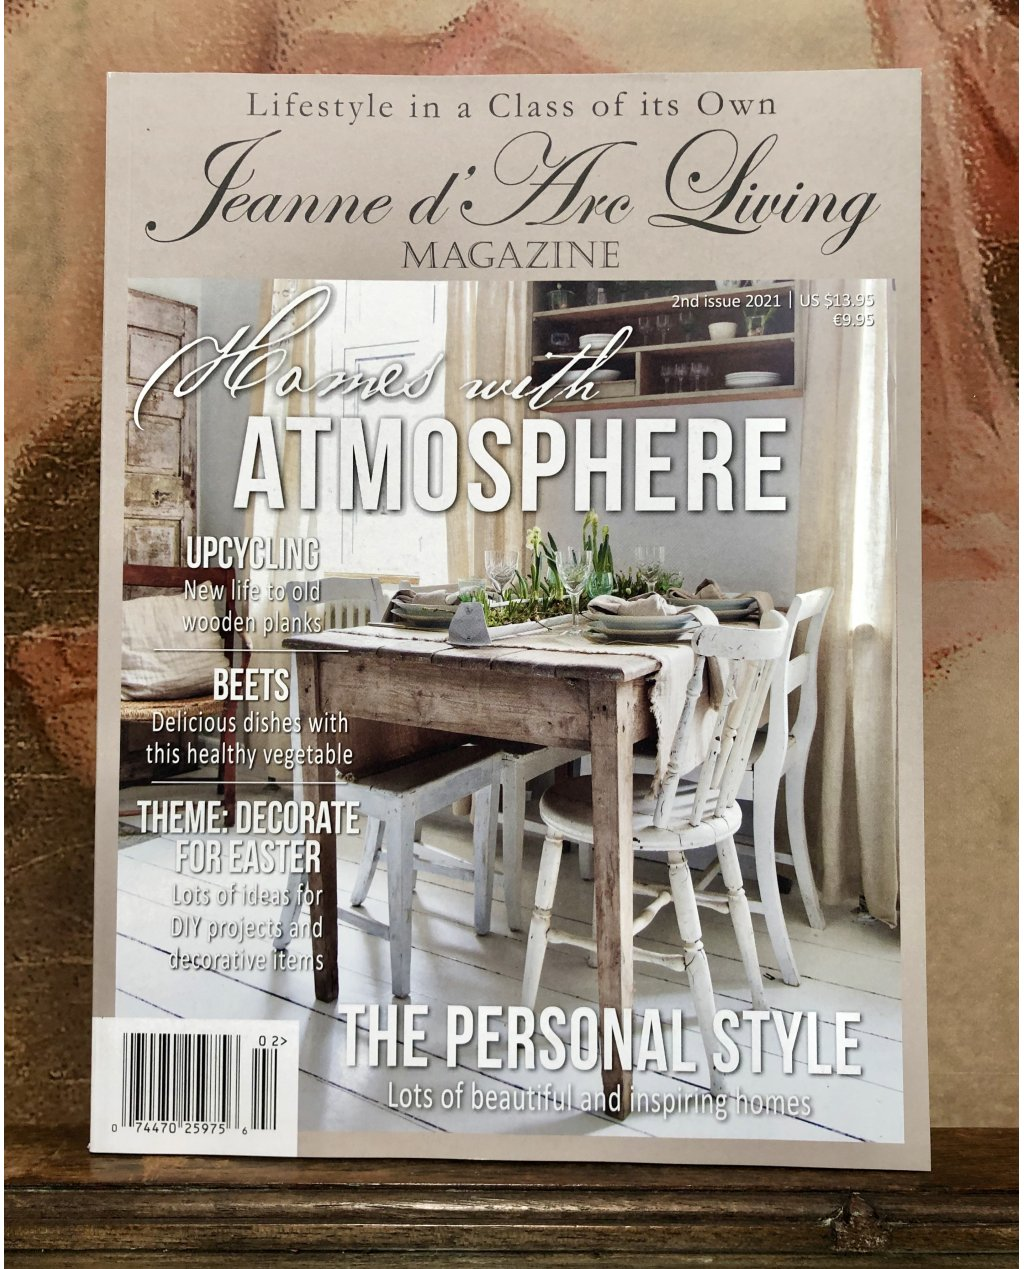 Jeanne d'Arc Living Magazine   Issue 2  2021